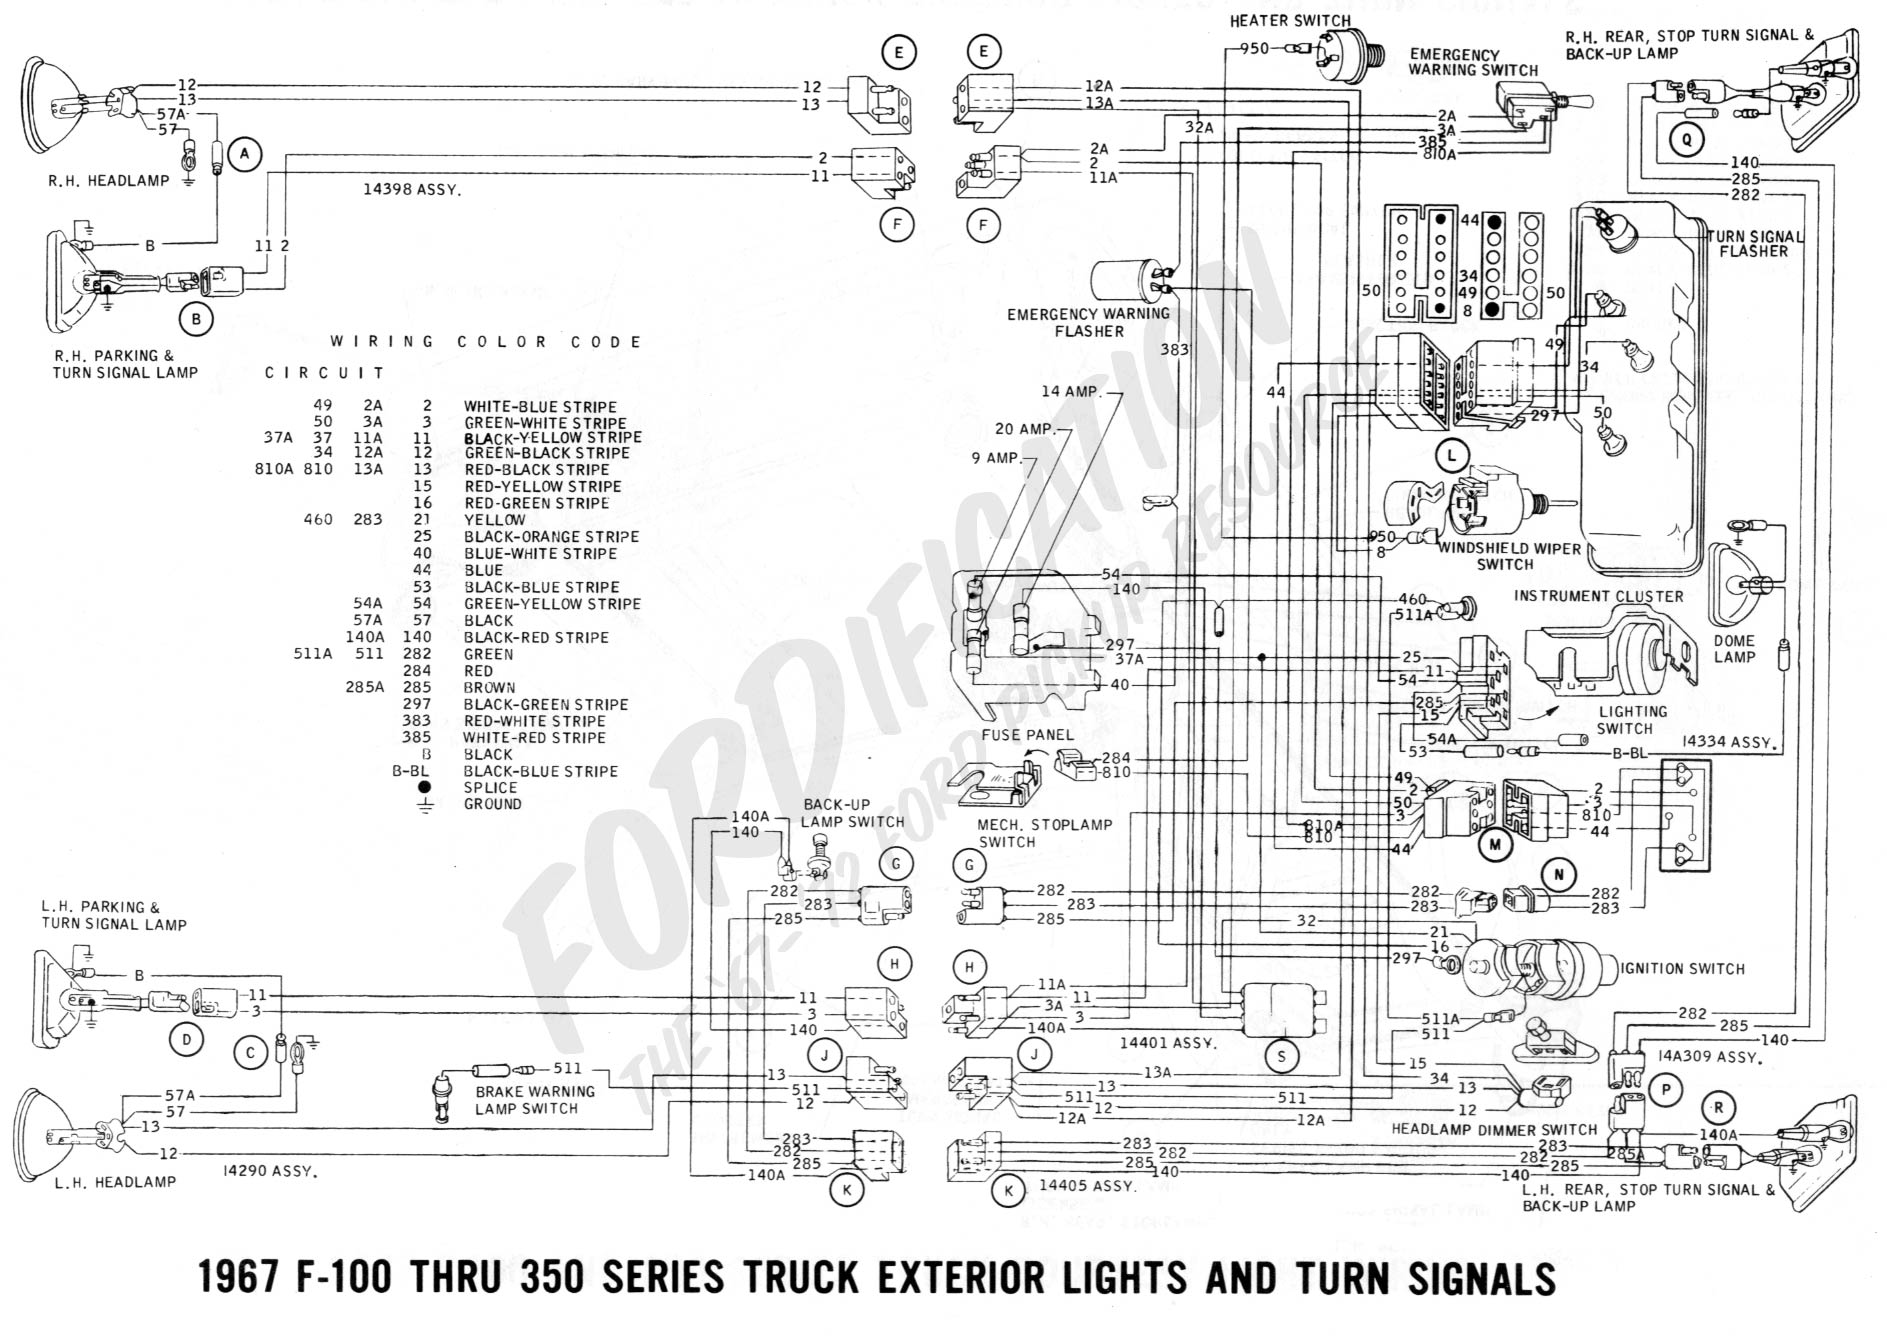 Ford Truck Technical Drawings and Schematics - Section H - Wiring DiagramsFORDification.com